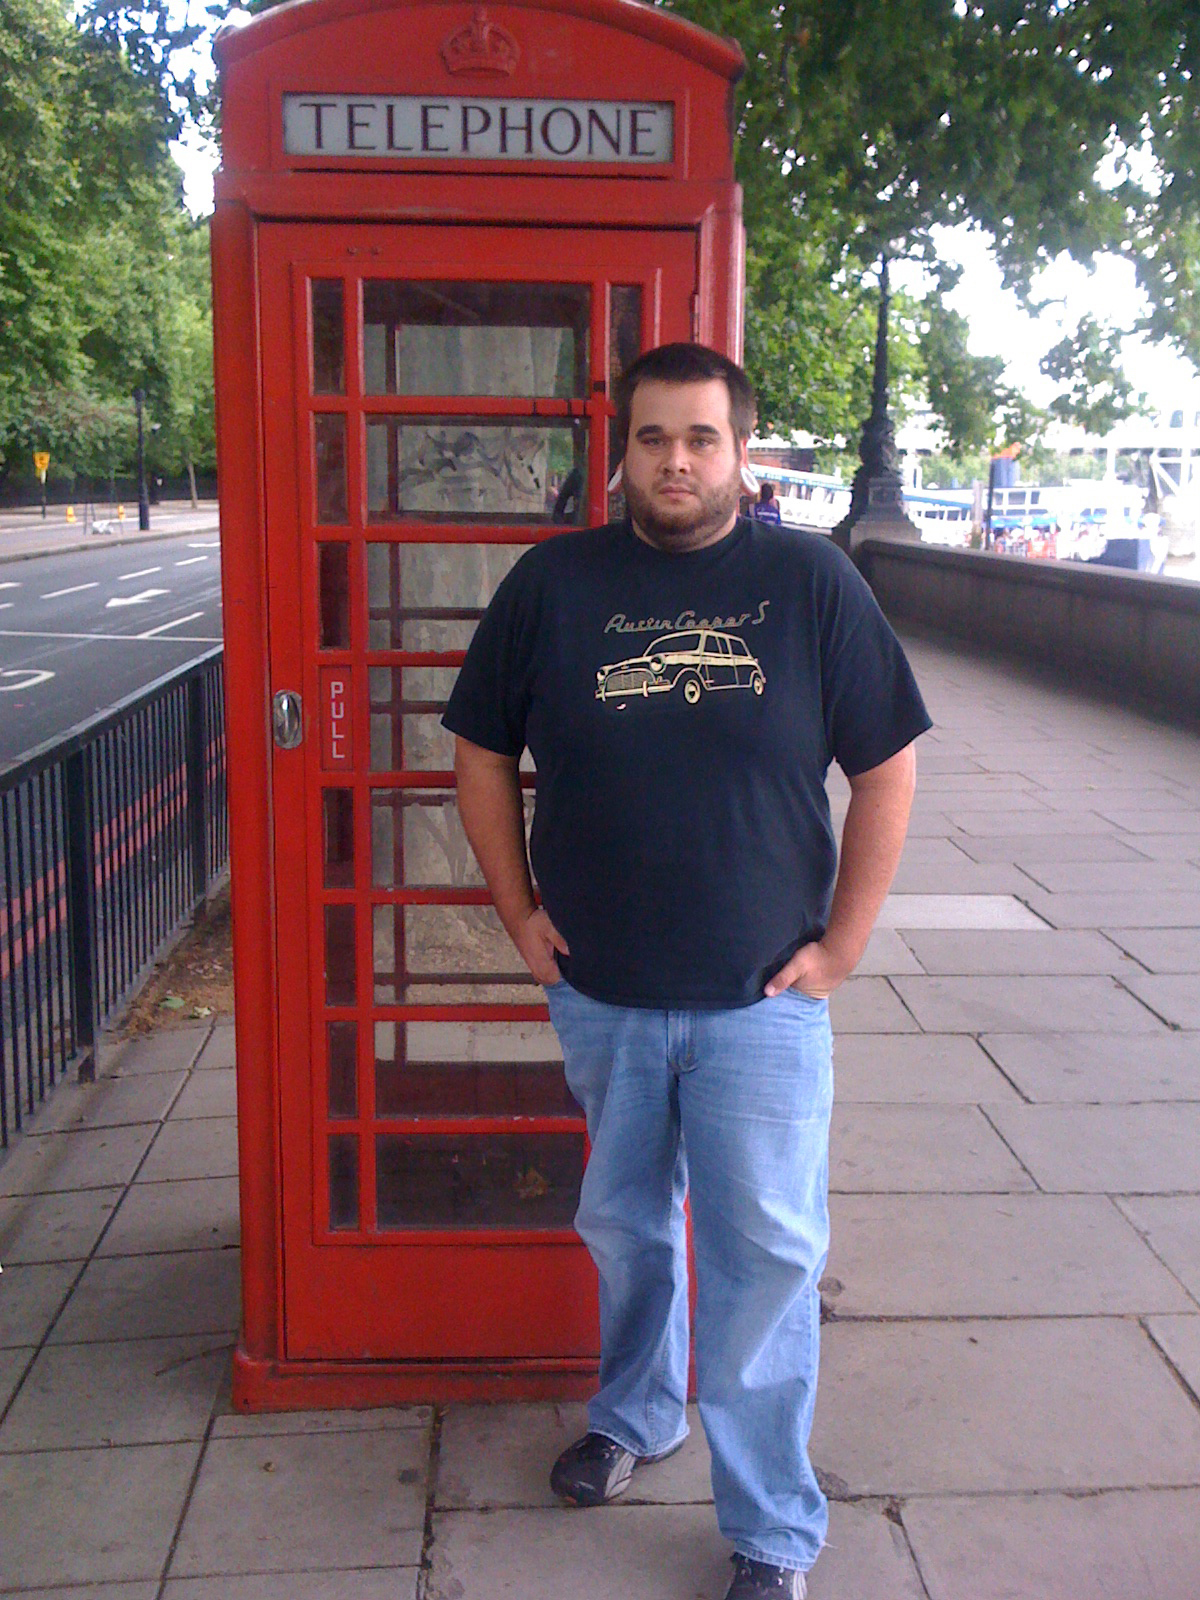 Ed Russell Phone Booth London.jpg